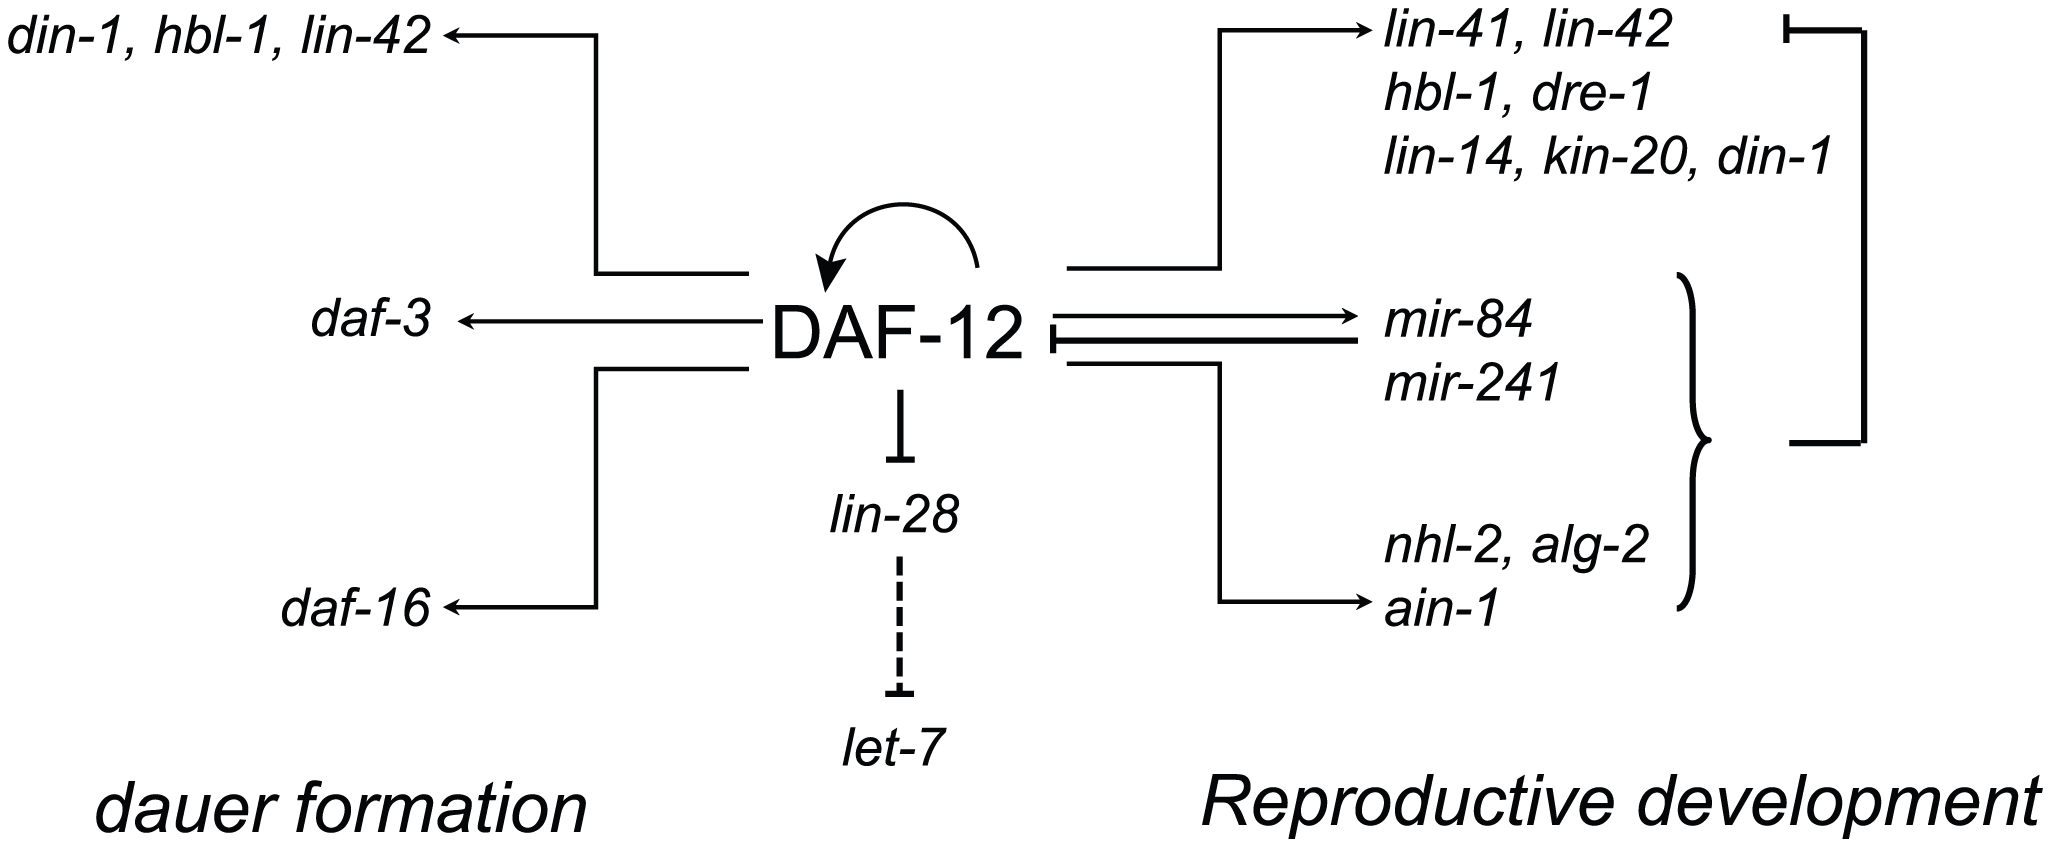 Multi-level control of genes involved in developmental decisions by DAF-12.